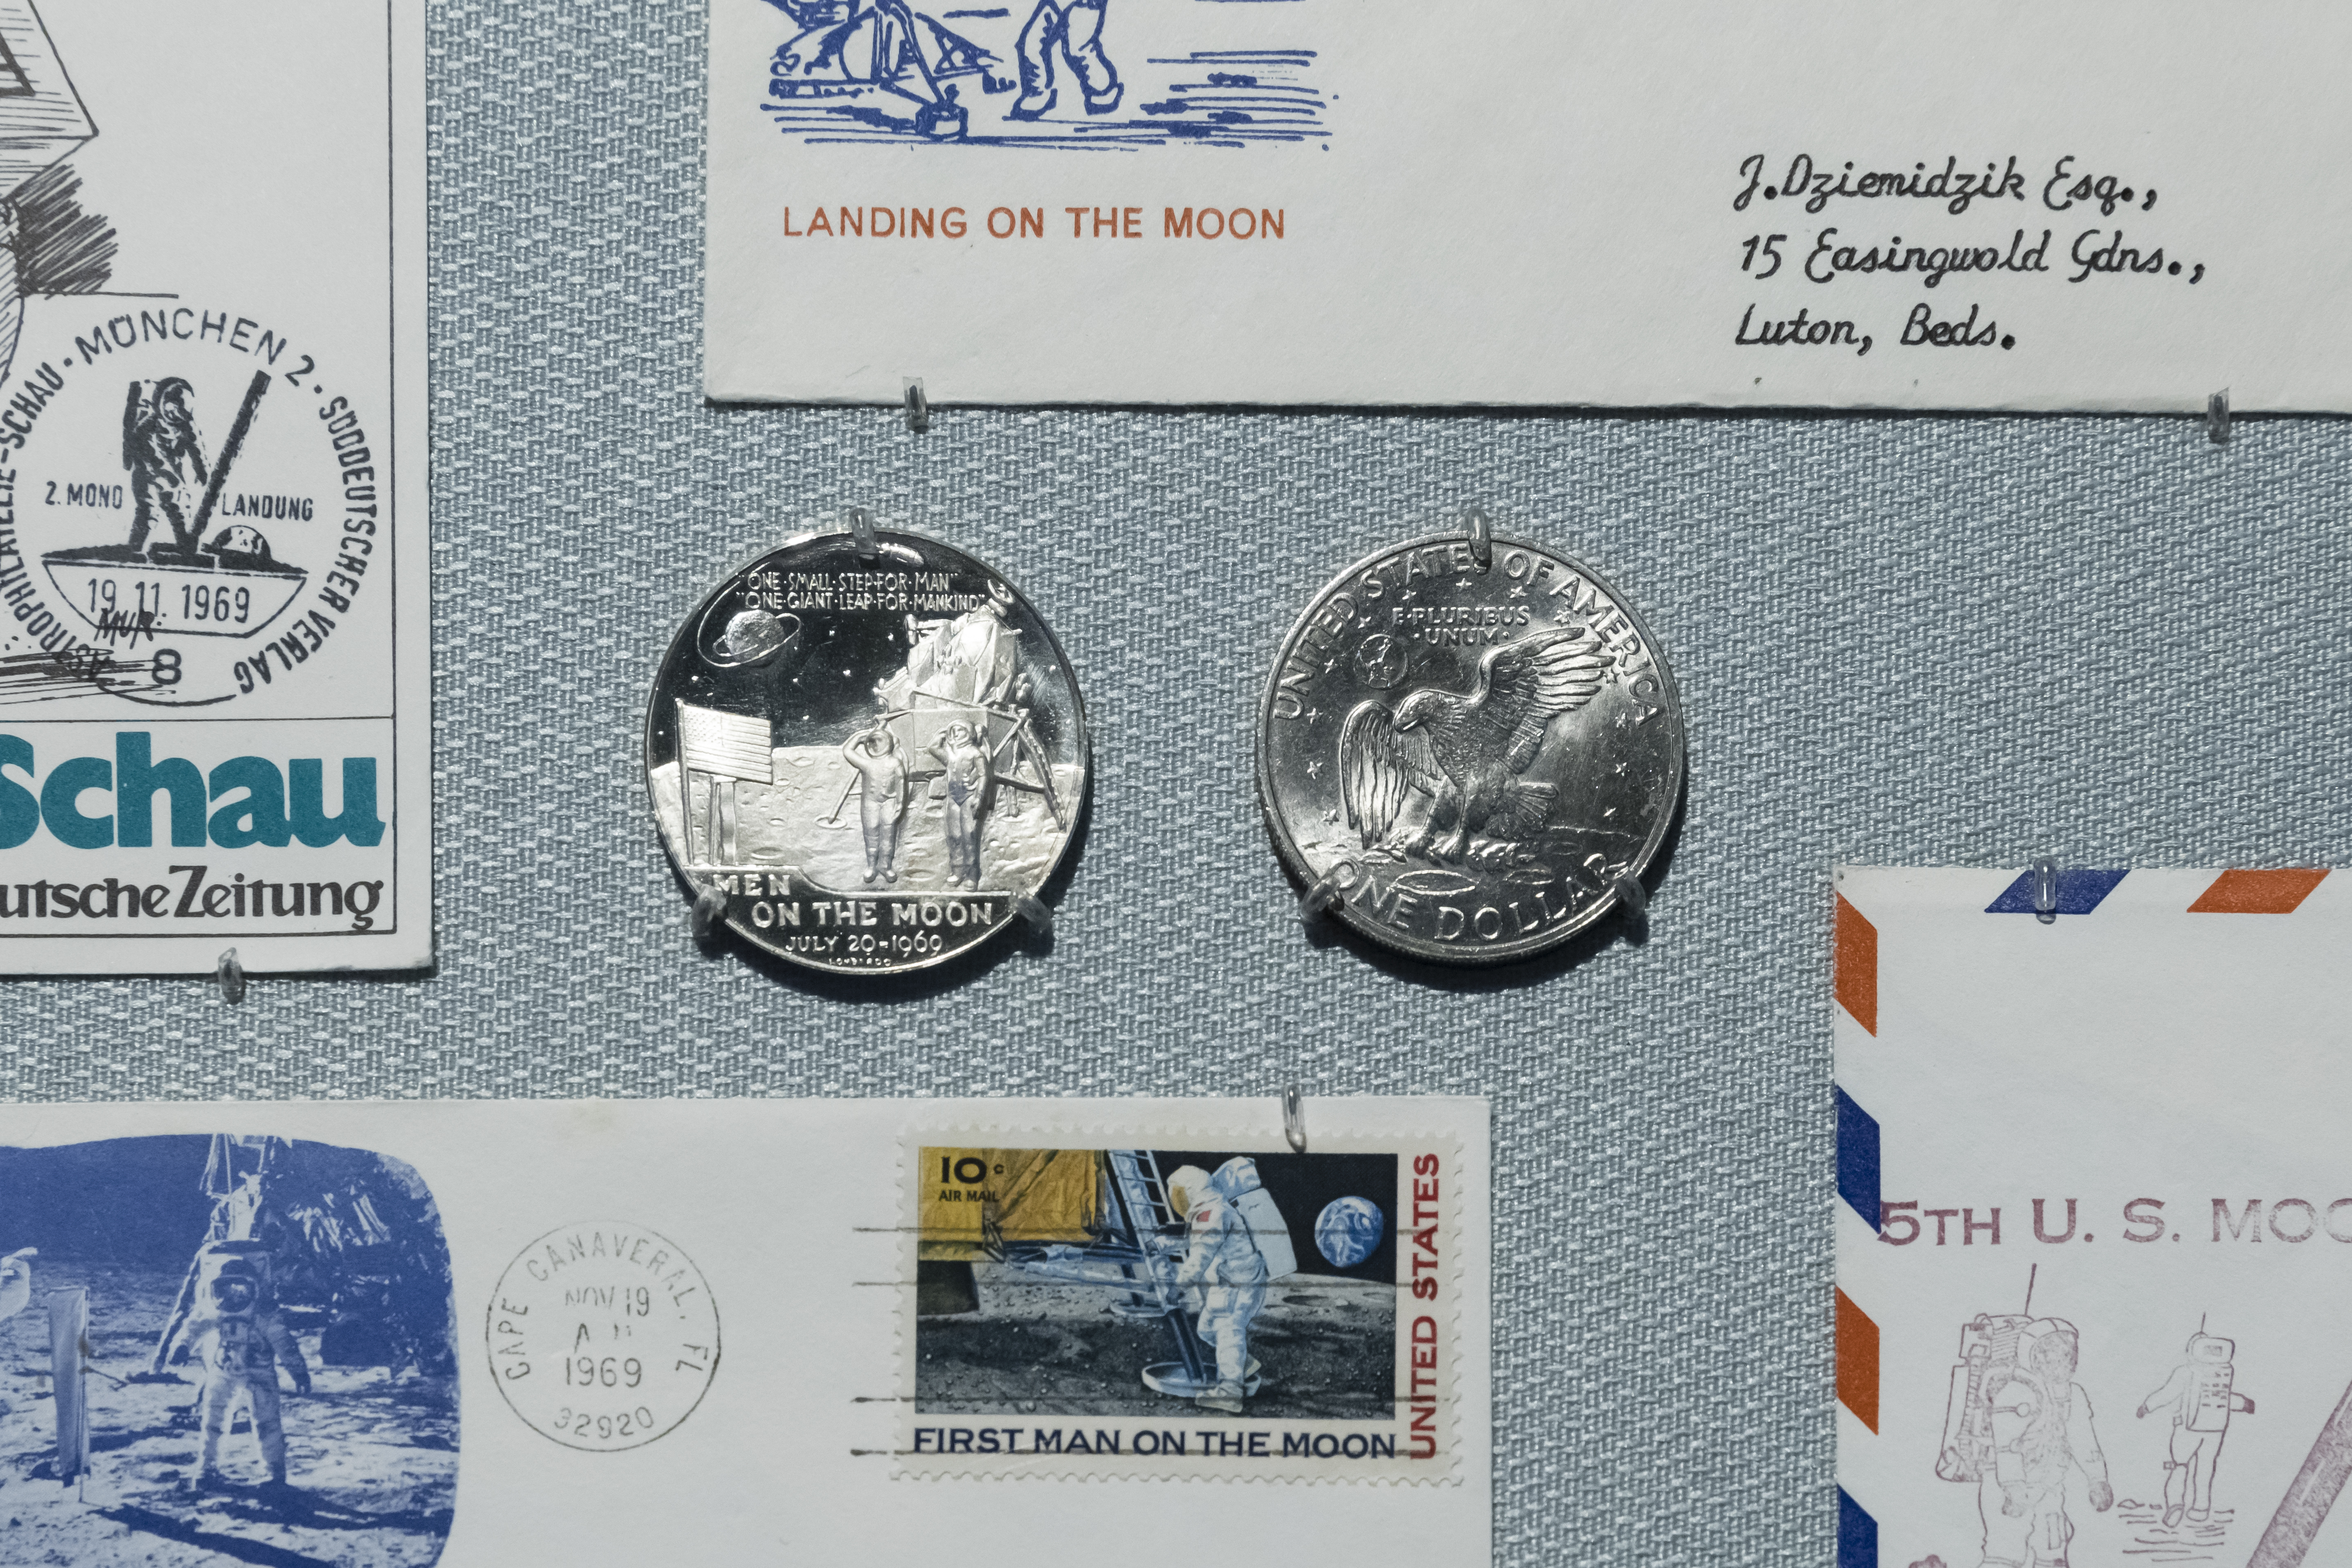 Two small silver medallions, surrounded by commemorative envelopes, all bearing imagery from the Apollo 11 mission.